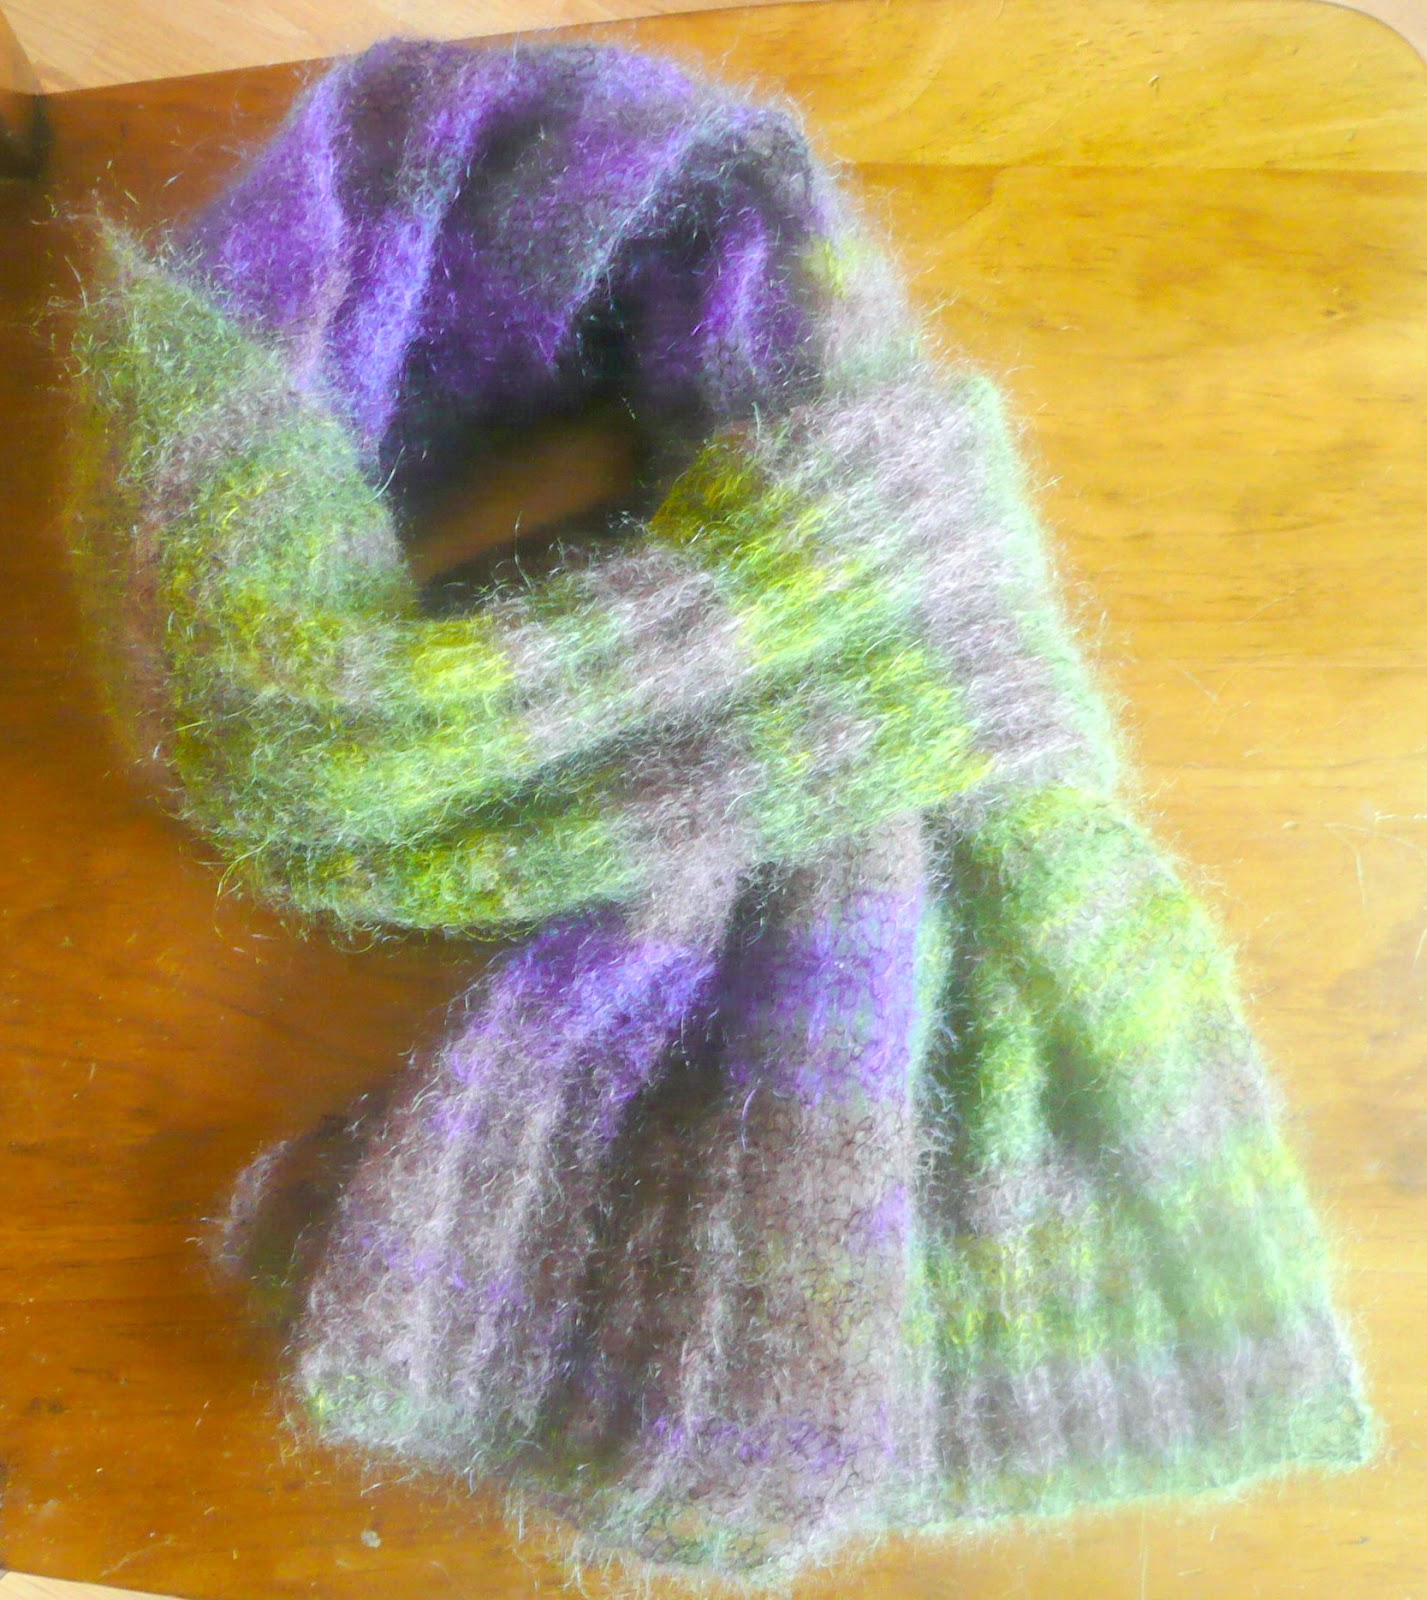 Knitting Patterns For Mohair Scarves : Ceradka Crafts: The wonder of mohair - a free scarf knitting pattern